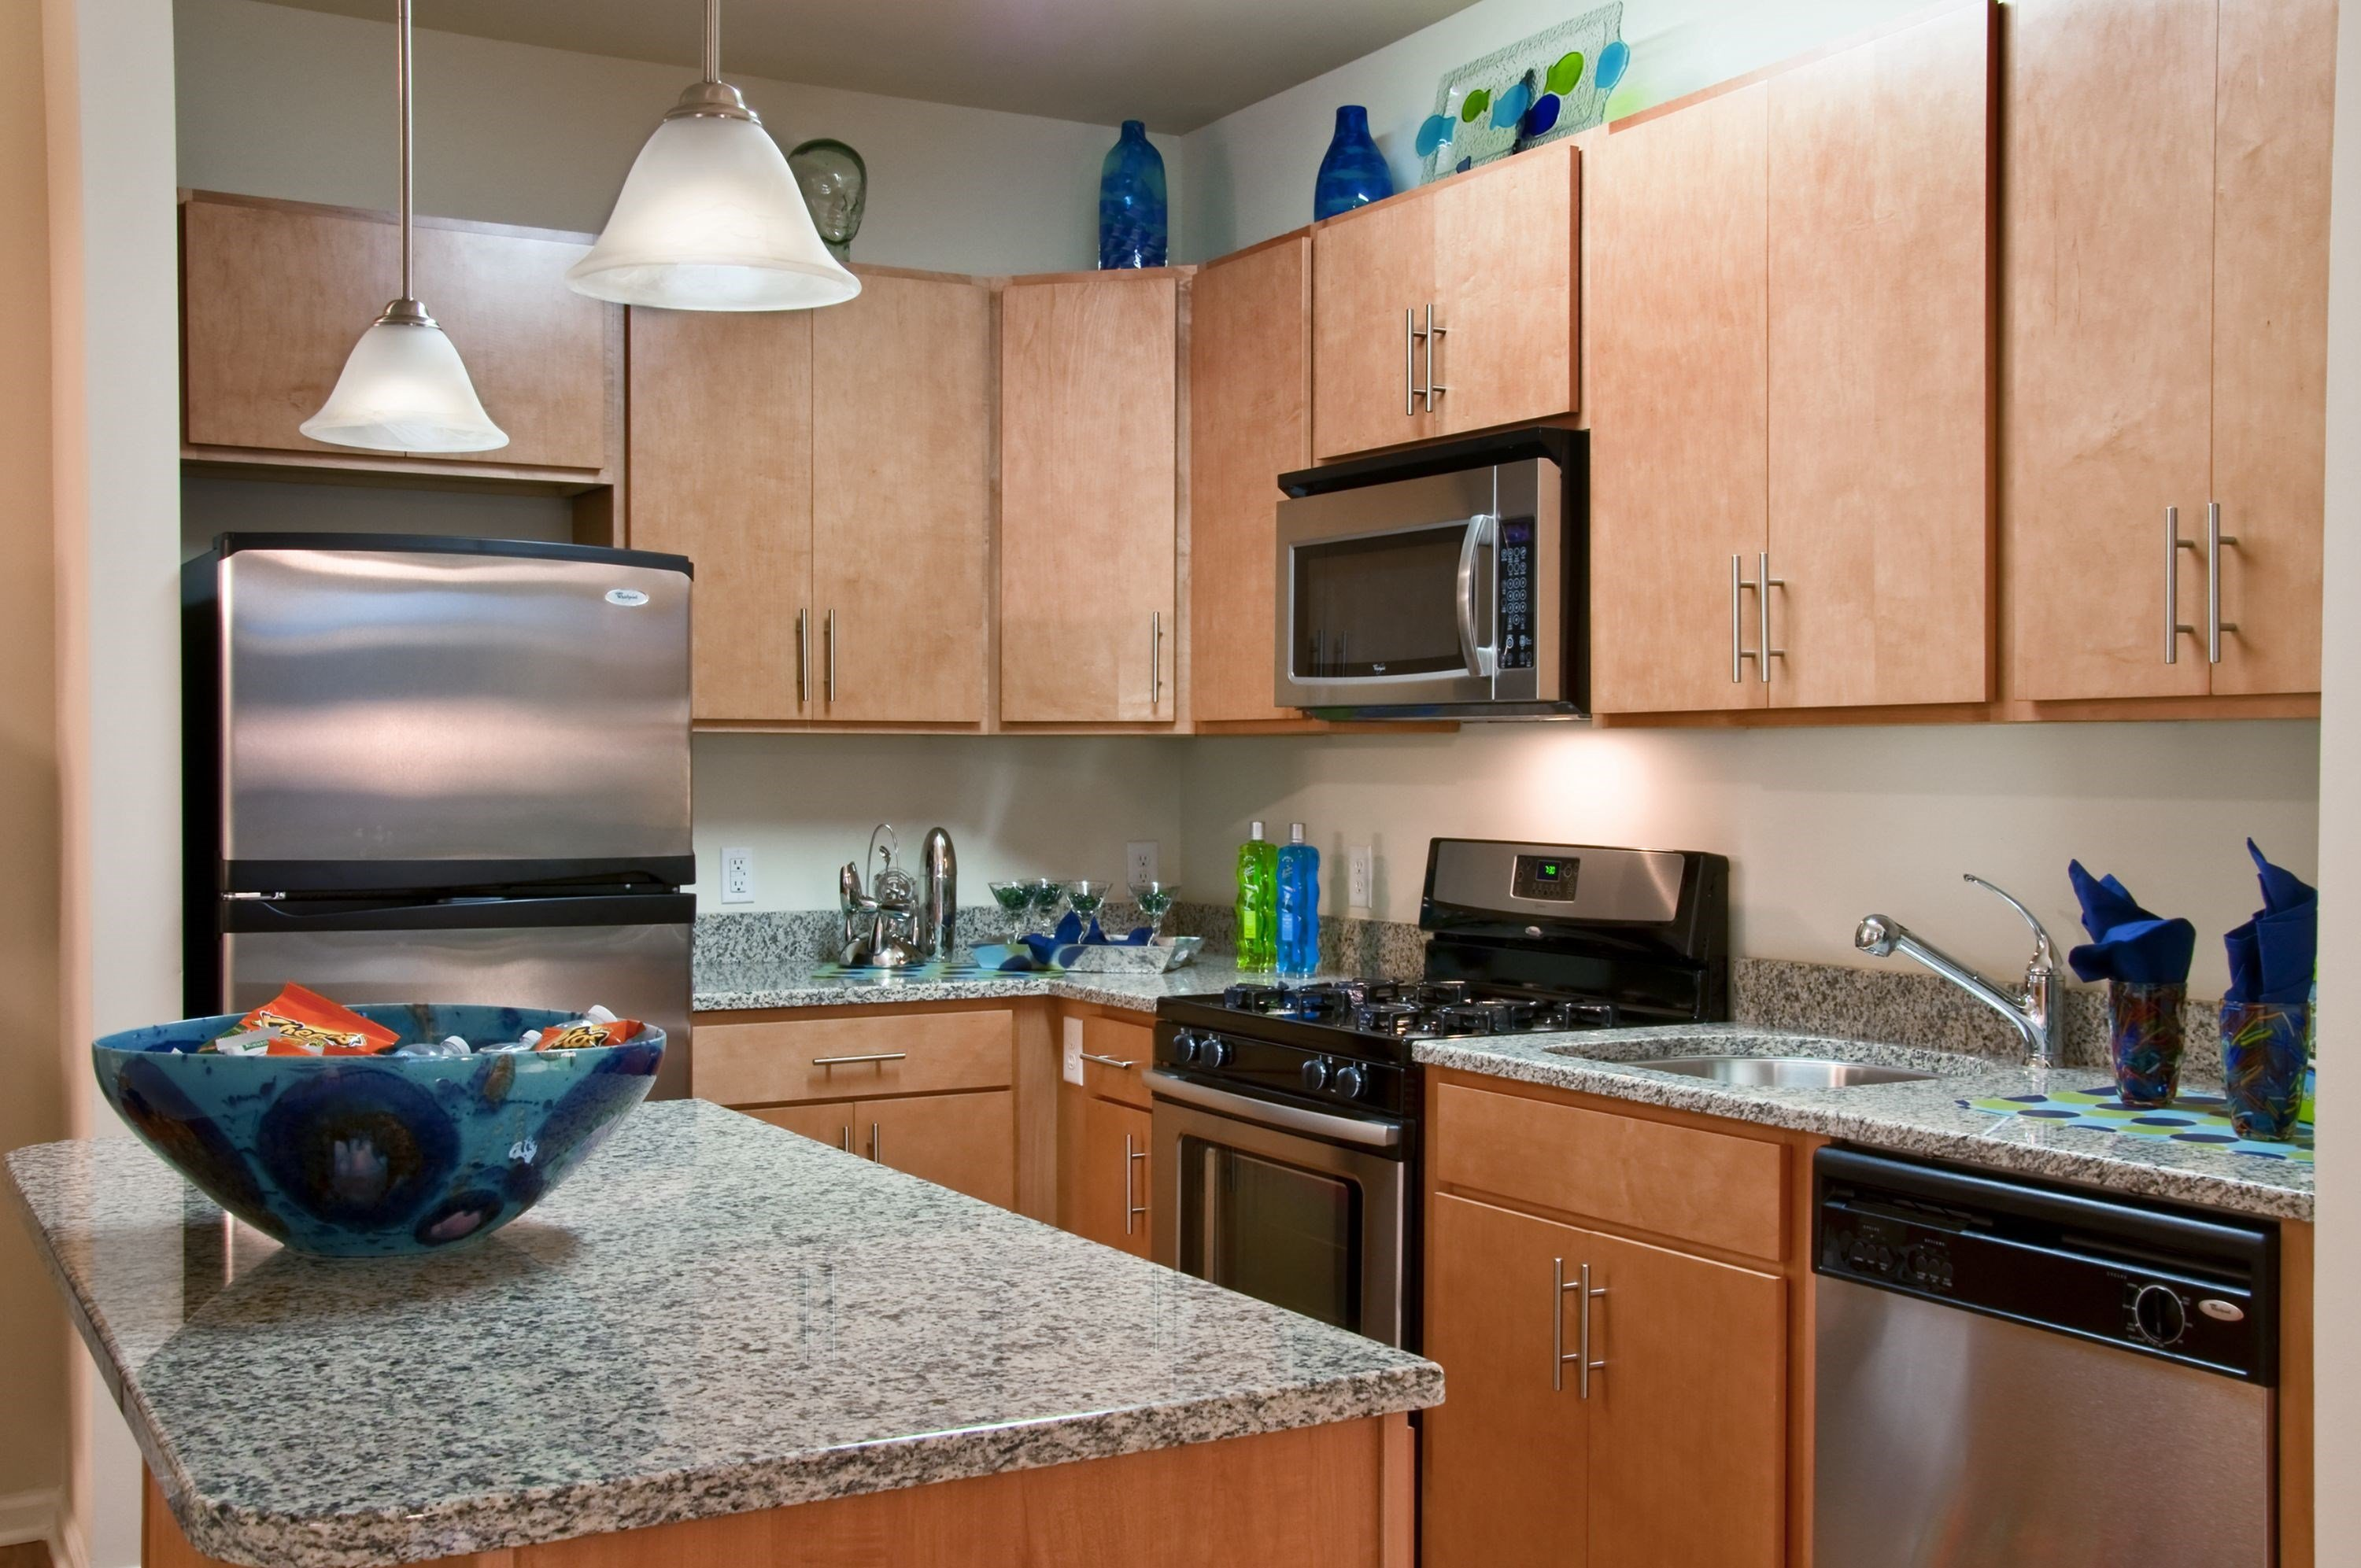 Kitchen at The Reserve at Riverdale Apartments in Riverdale, NJ